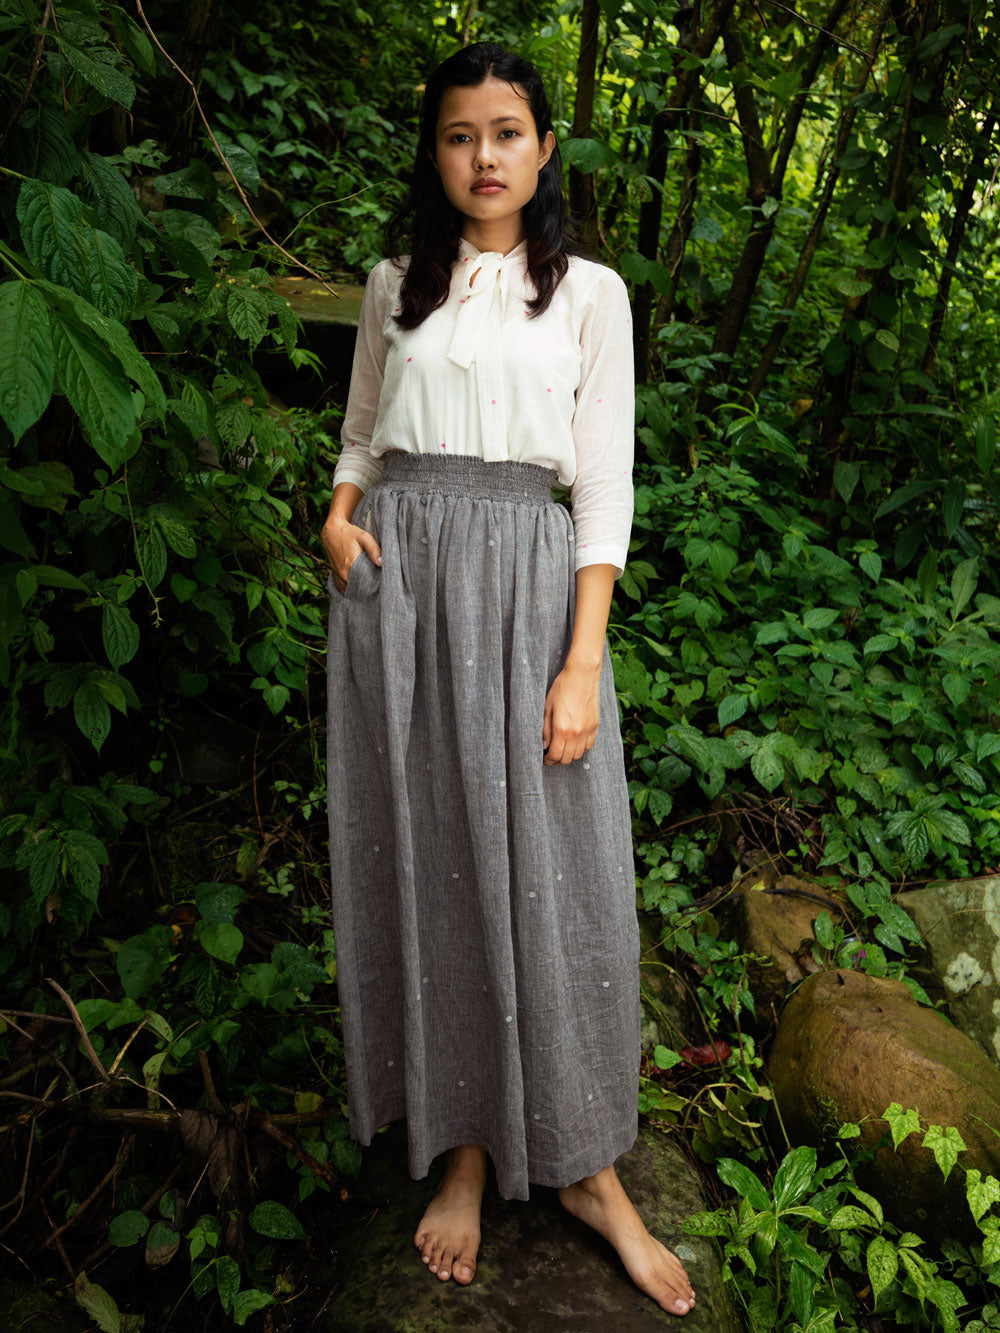 Handwoven cotton skirt with white dots featuring elasticated waist & deep pockets